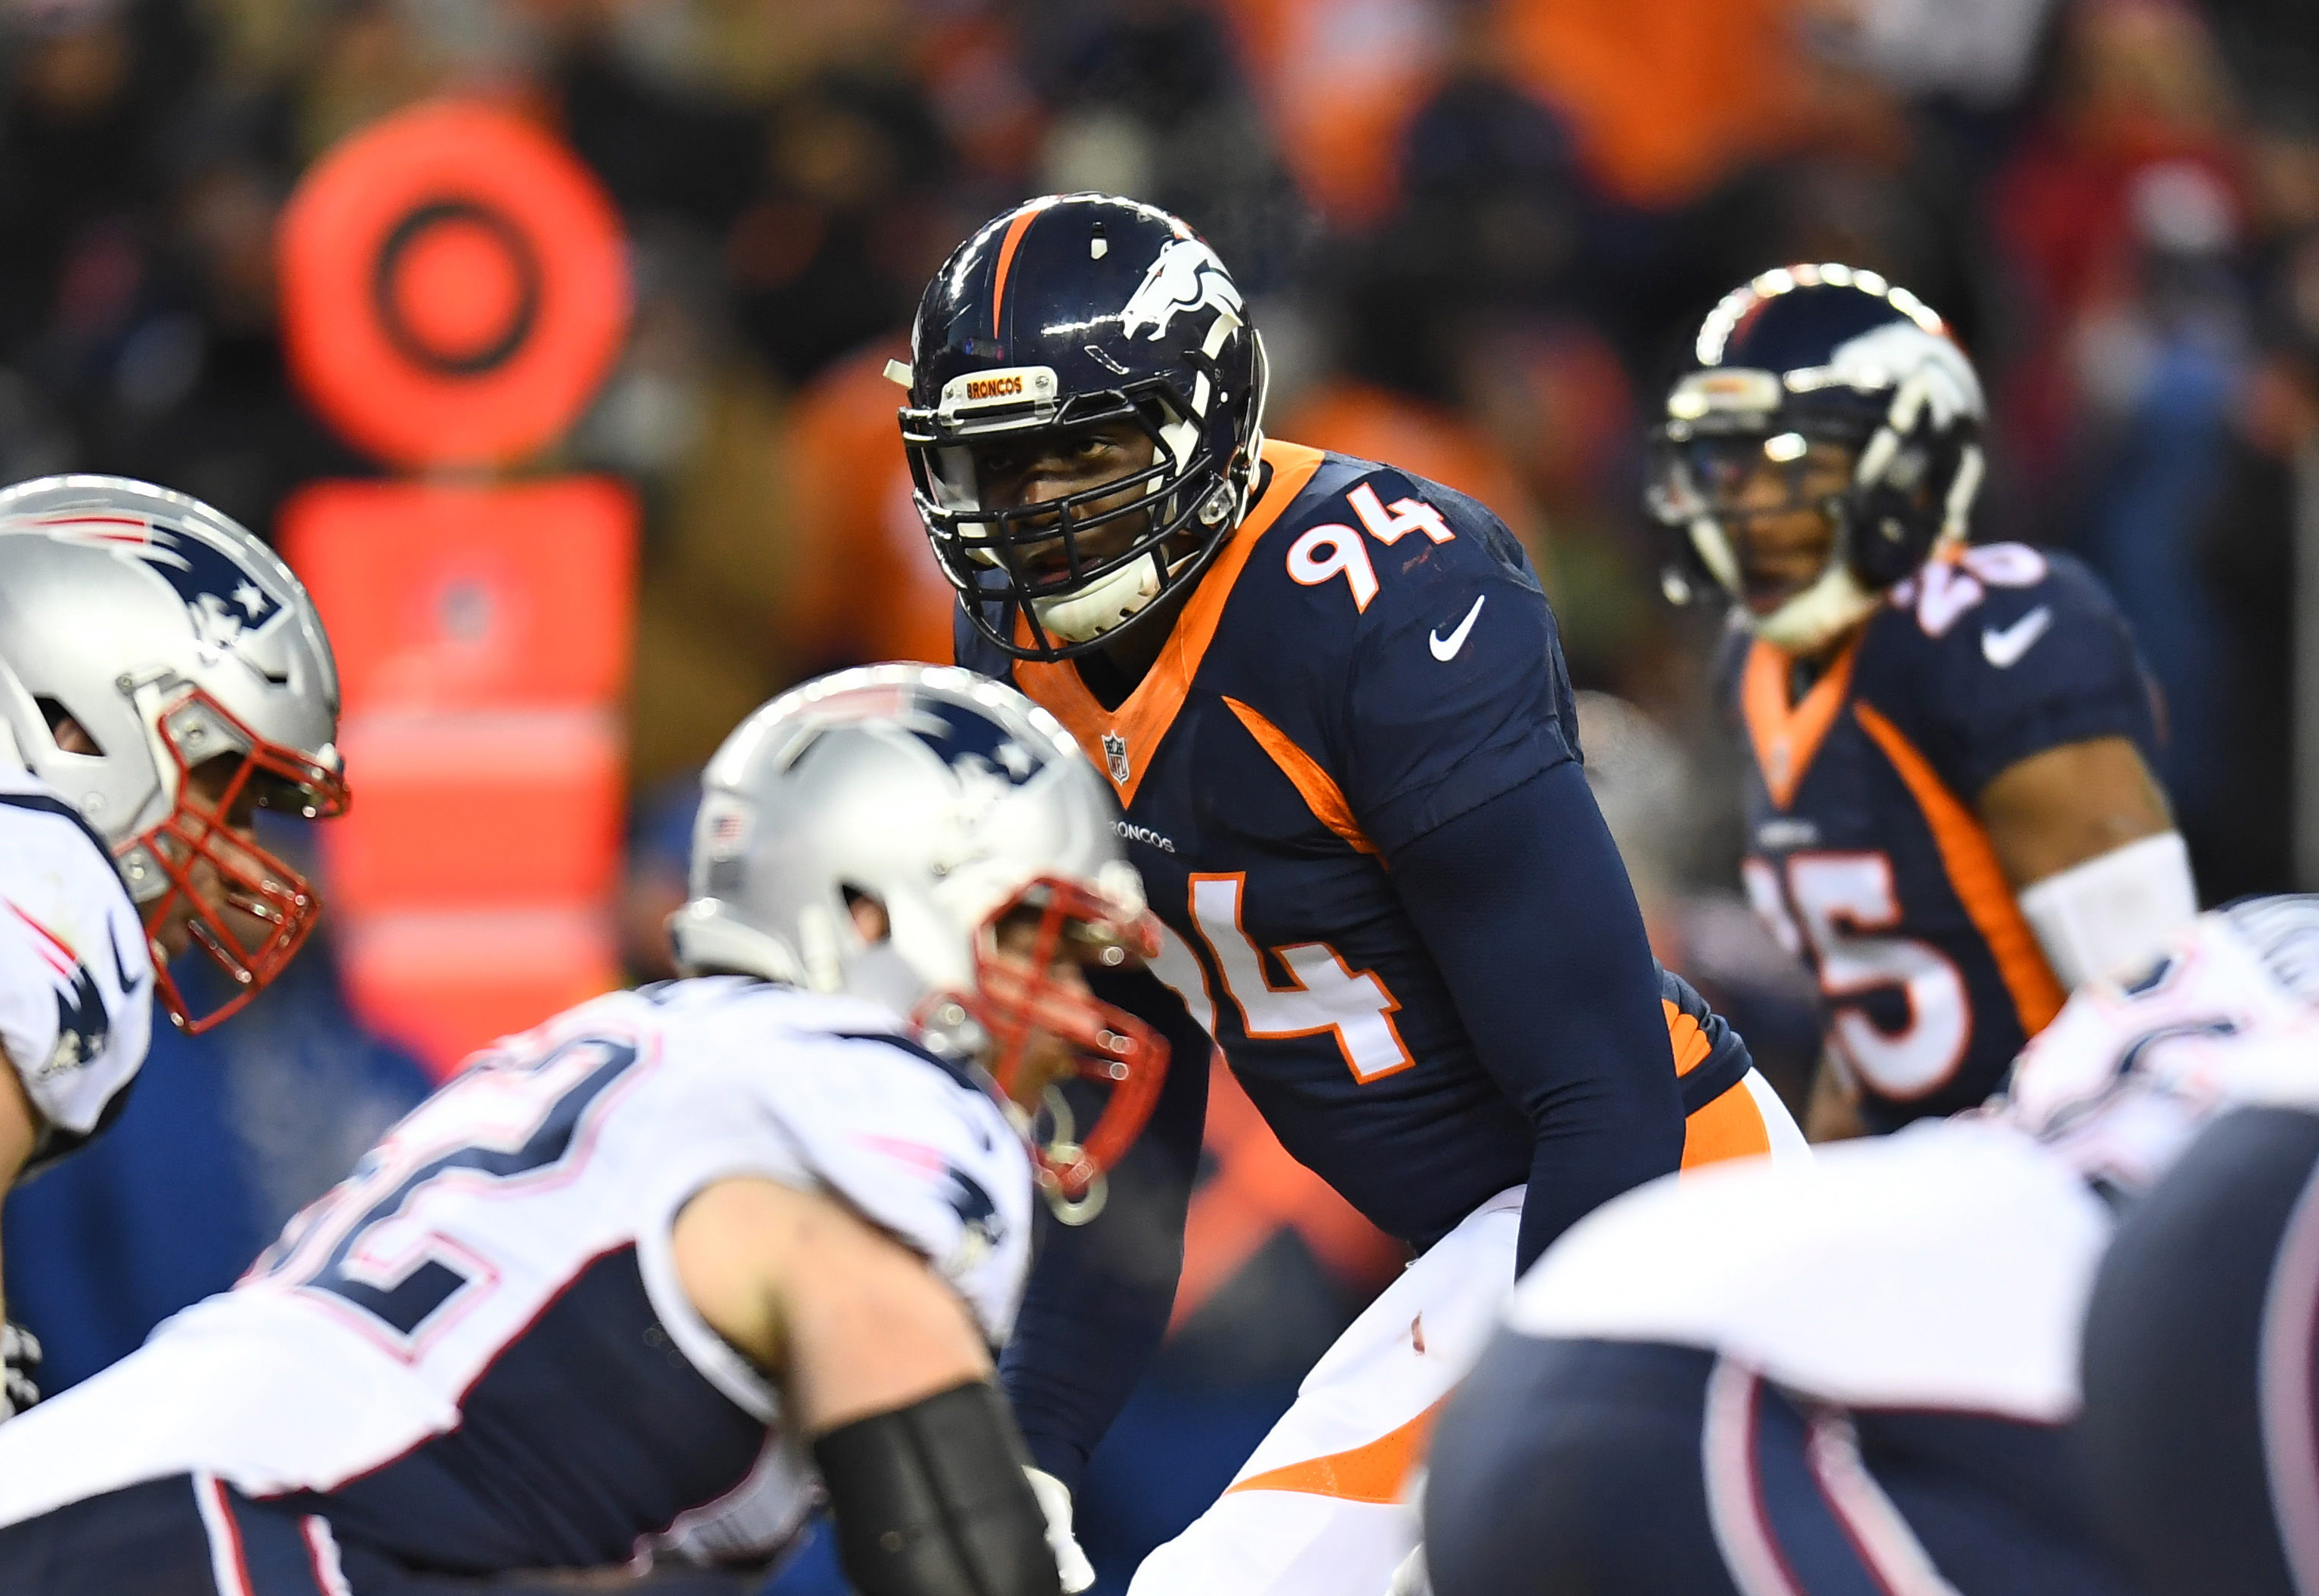 Dec 18, 2016; Denver, CO, USA; Denver Broncos outside linebacker DeMarcus Ware (94) lines up in the second half against the New England Patriots at Sports Authority Field. Mandatory Credit: Ron Chenoy-USA TODAY Sports